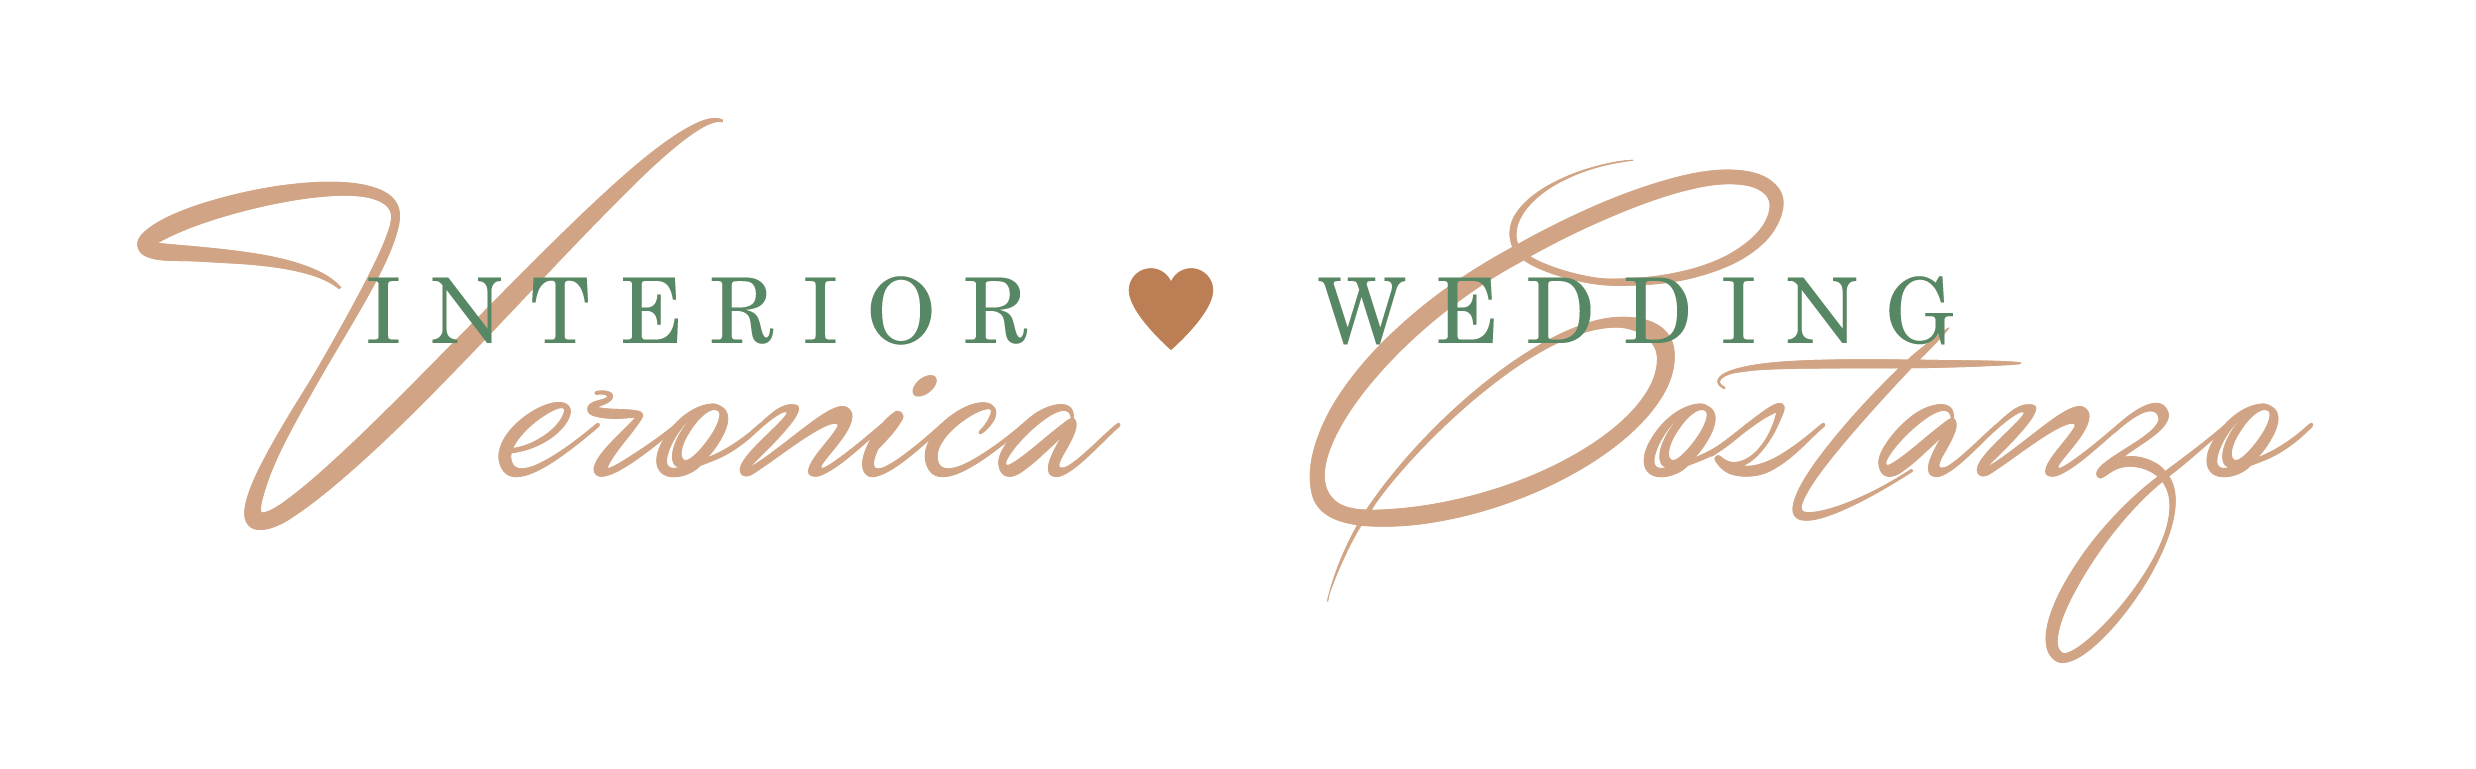 Veronica Costanzo Interior Wedding - Wedding Planner